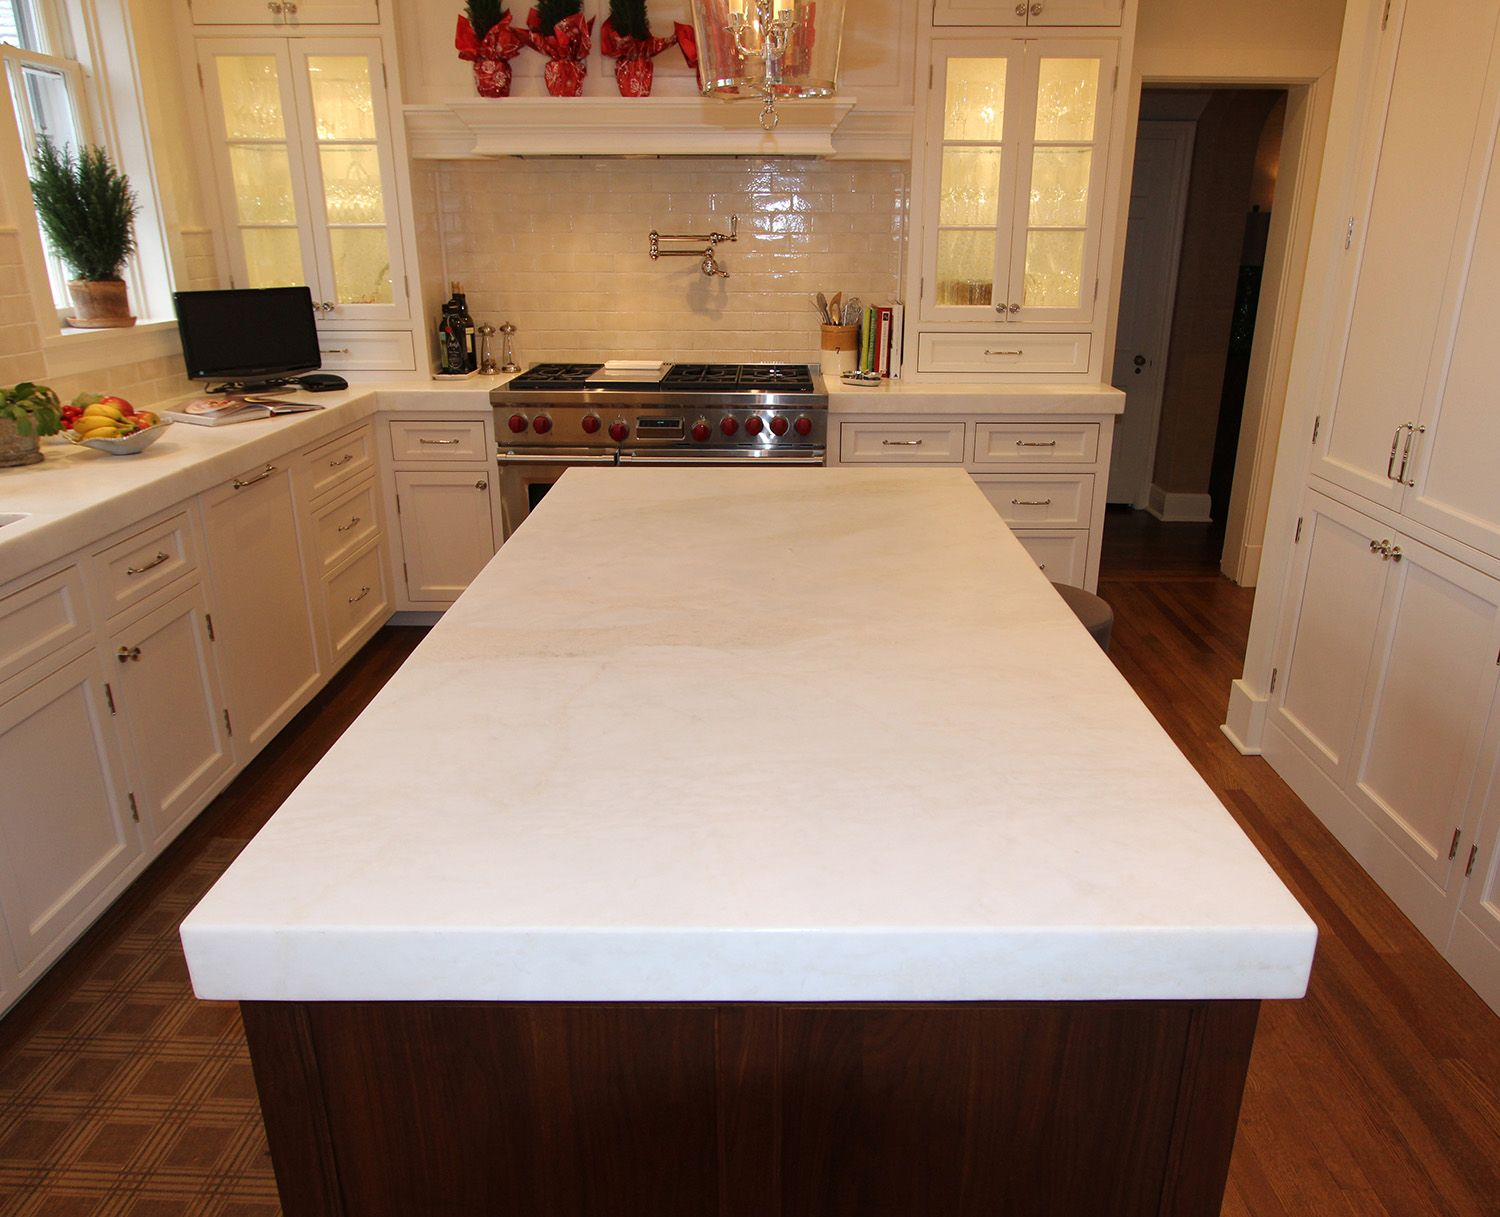 Kitchen Island Granite Top Home Depot Backsplash Tiles For Countertop With Light Colored